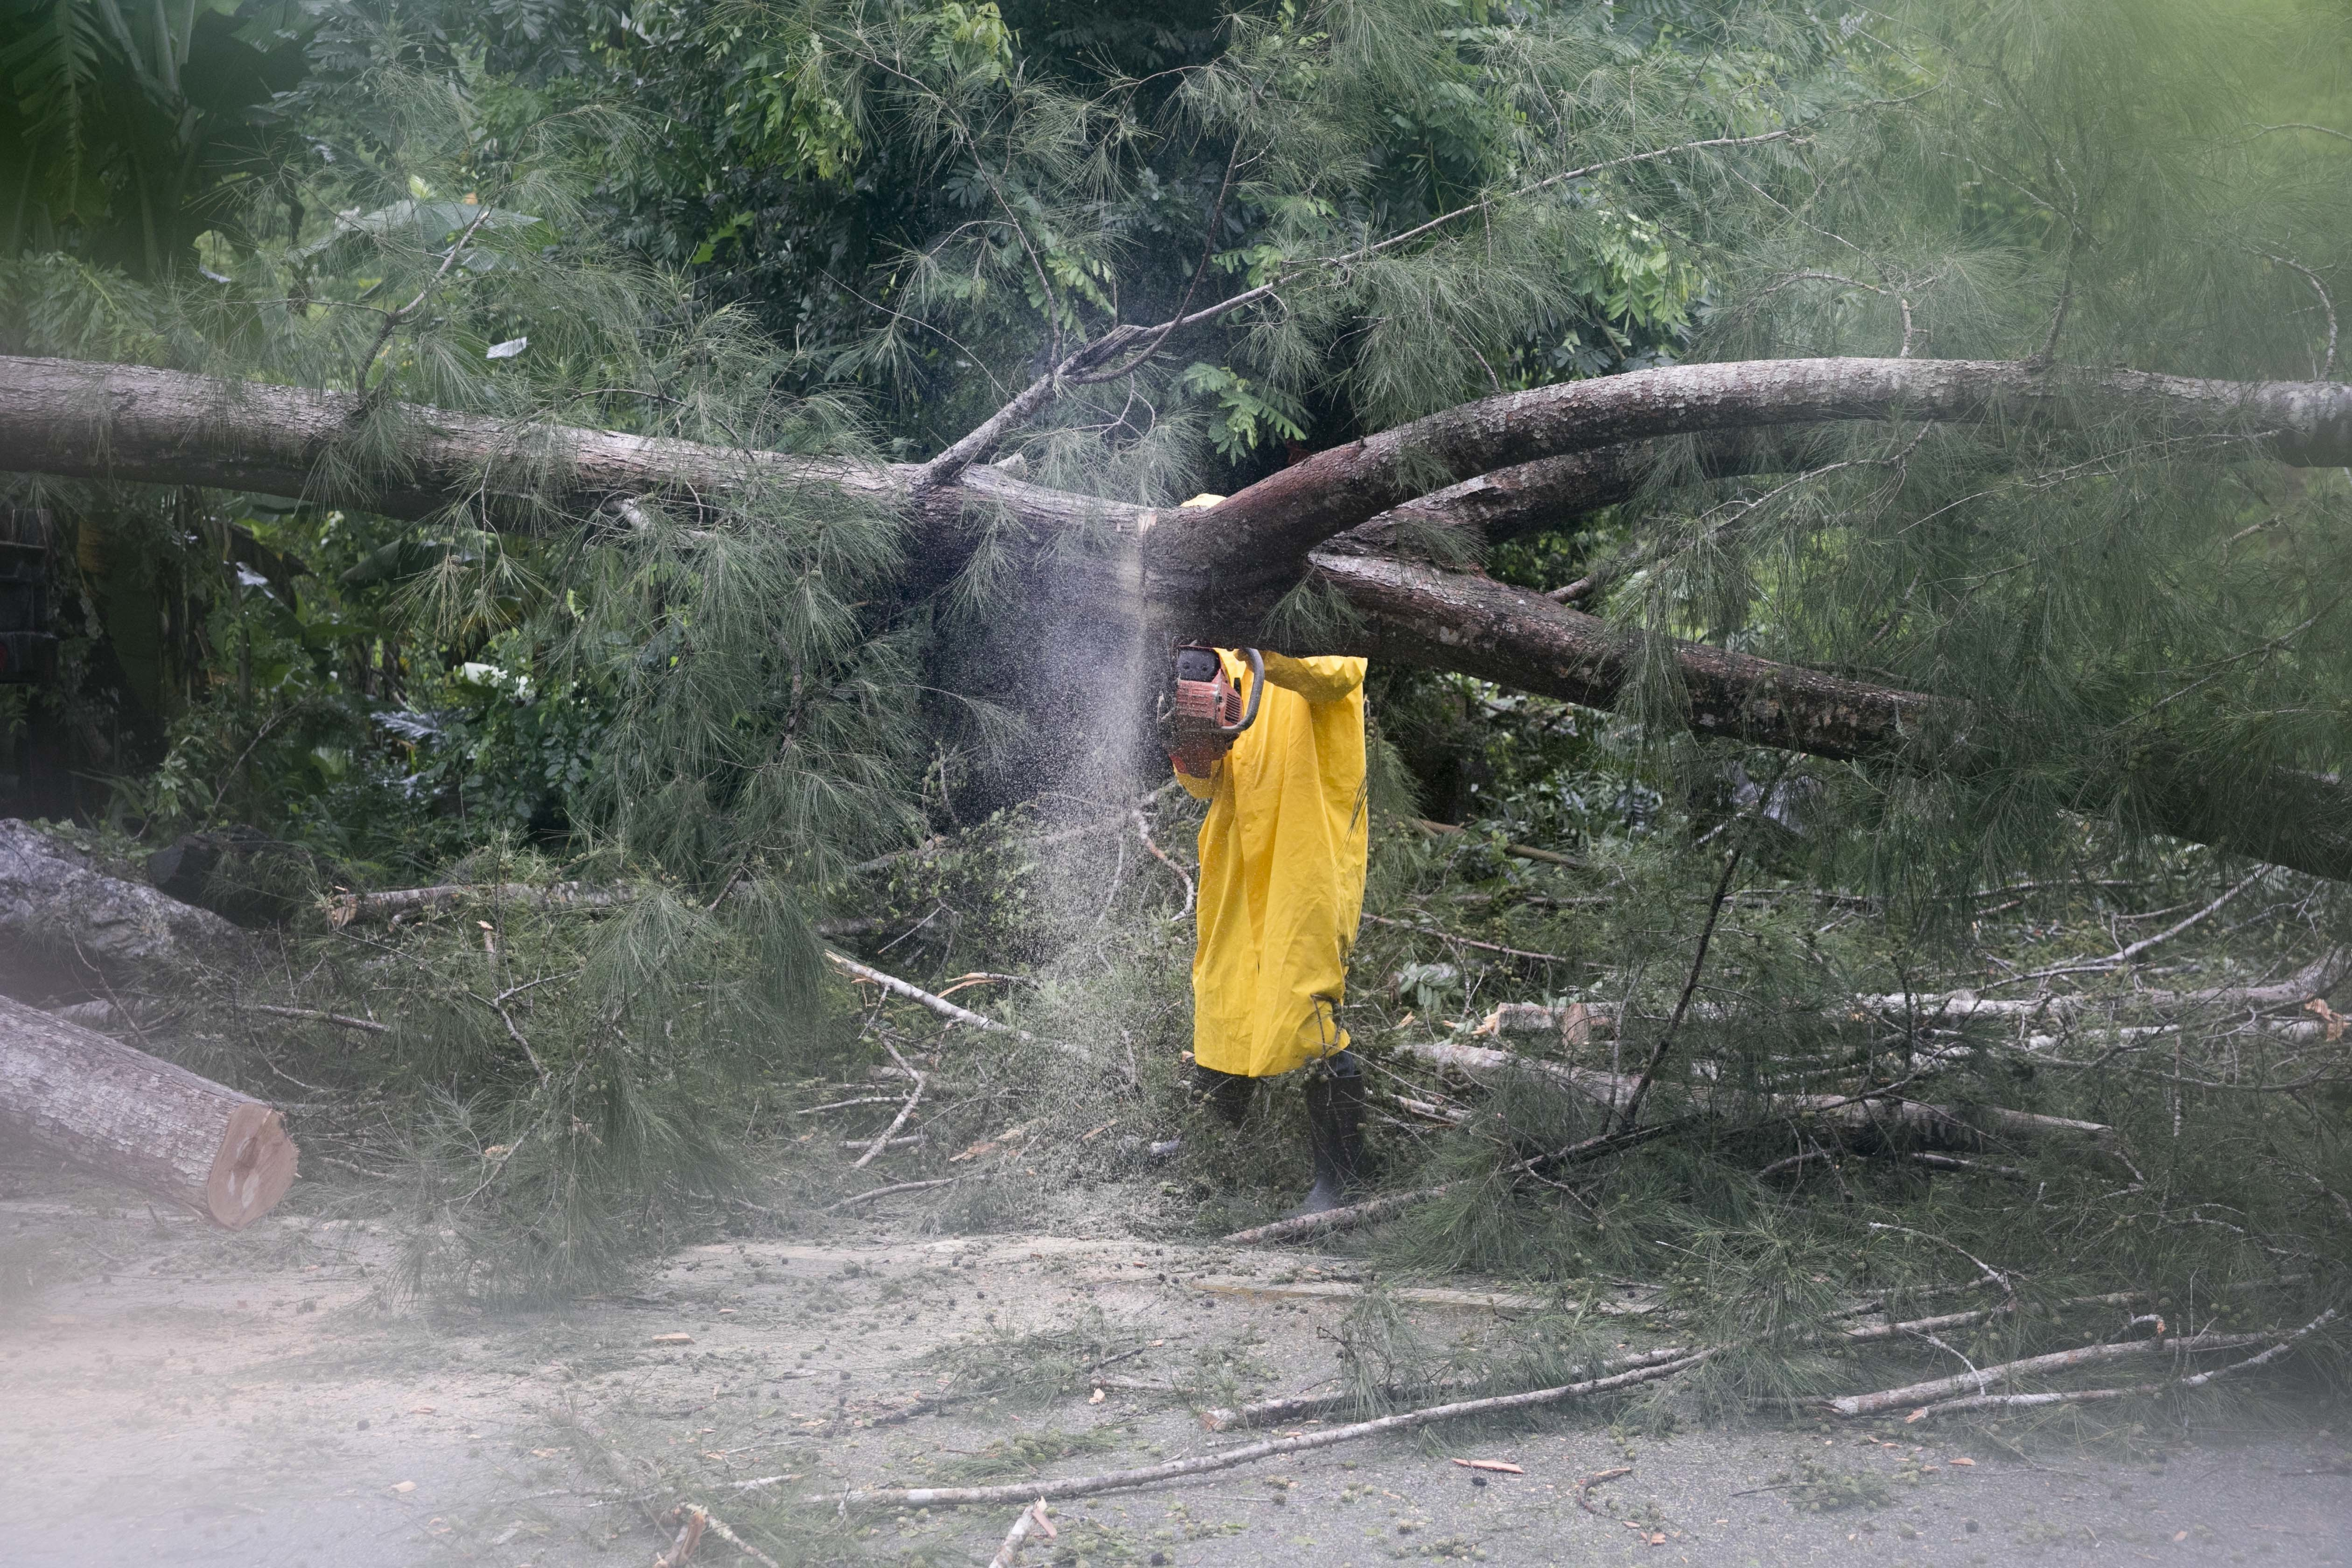 An employee from an electrical company works to remove a tree felled by Hurricane Irma, in Sanchez, Dominican Republic, Thursday, Sept. 7, 2017. Irma cut a path of devastation across the northern Caribbean, leaving thousands homeless after destroying buildings and uprooting trees. Irma flooded parts of the Dominican Republic when it roared by, just off the northern coast of the island it shares with Haiti. (AP Photo/Tatiana Fernandez)